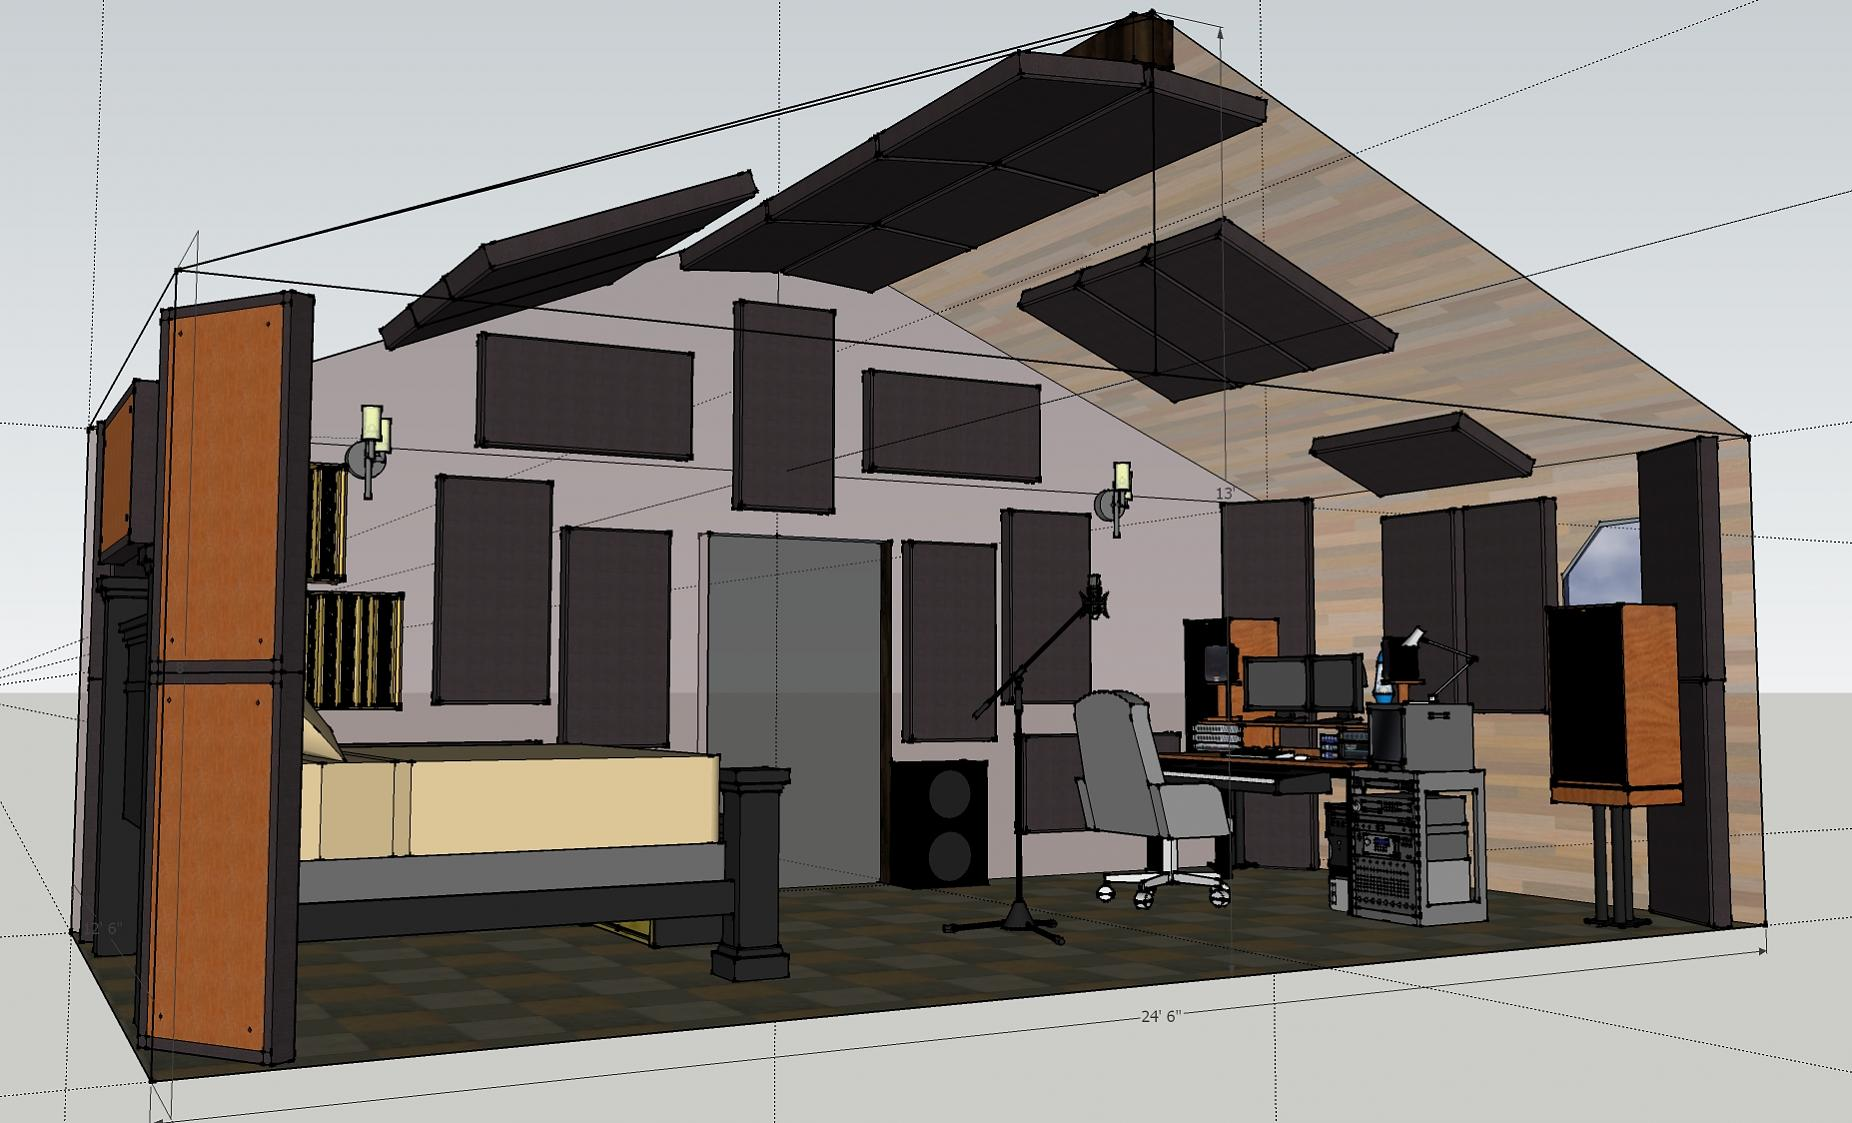 Vaulted ceiling studio project acoustic treatments gearslutz vaulted ceiling studio project acoustic treatments studio upg dailygadgetfo Gallery